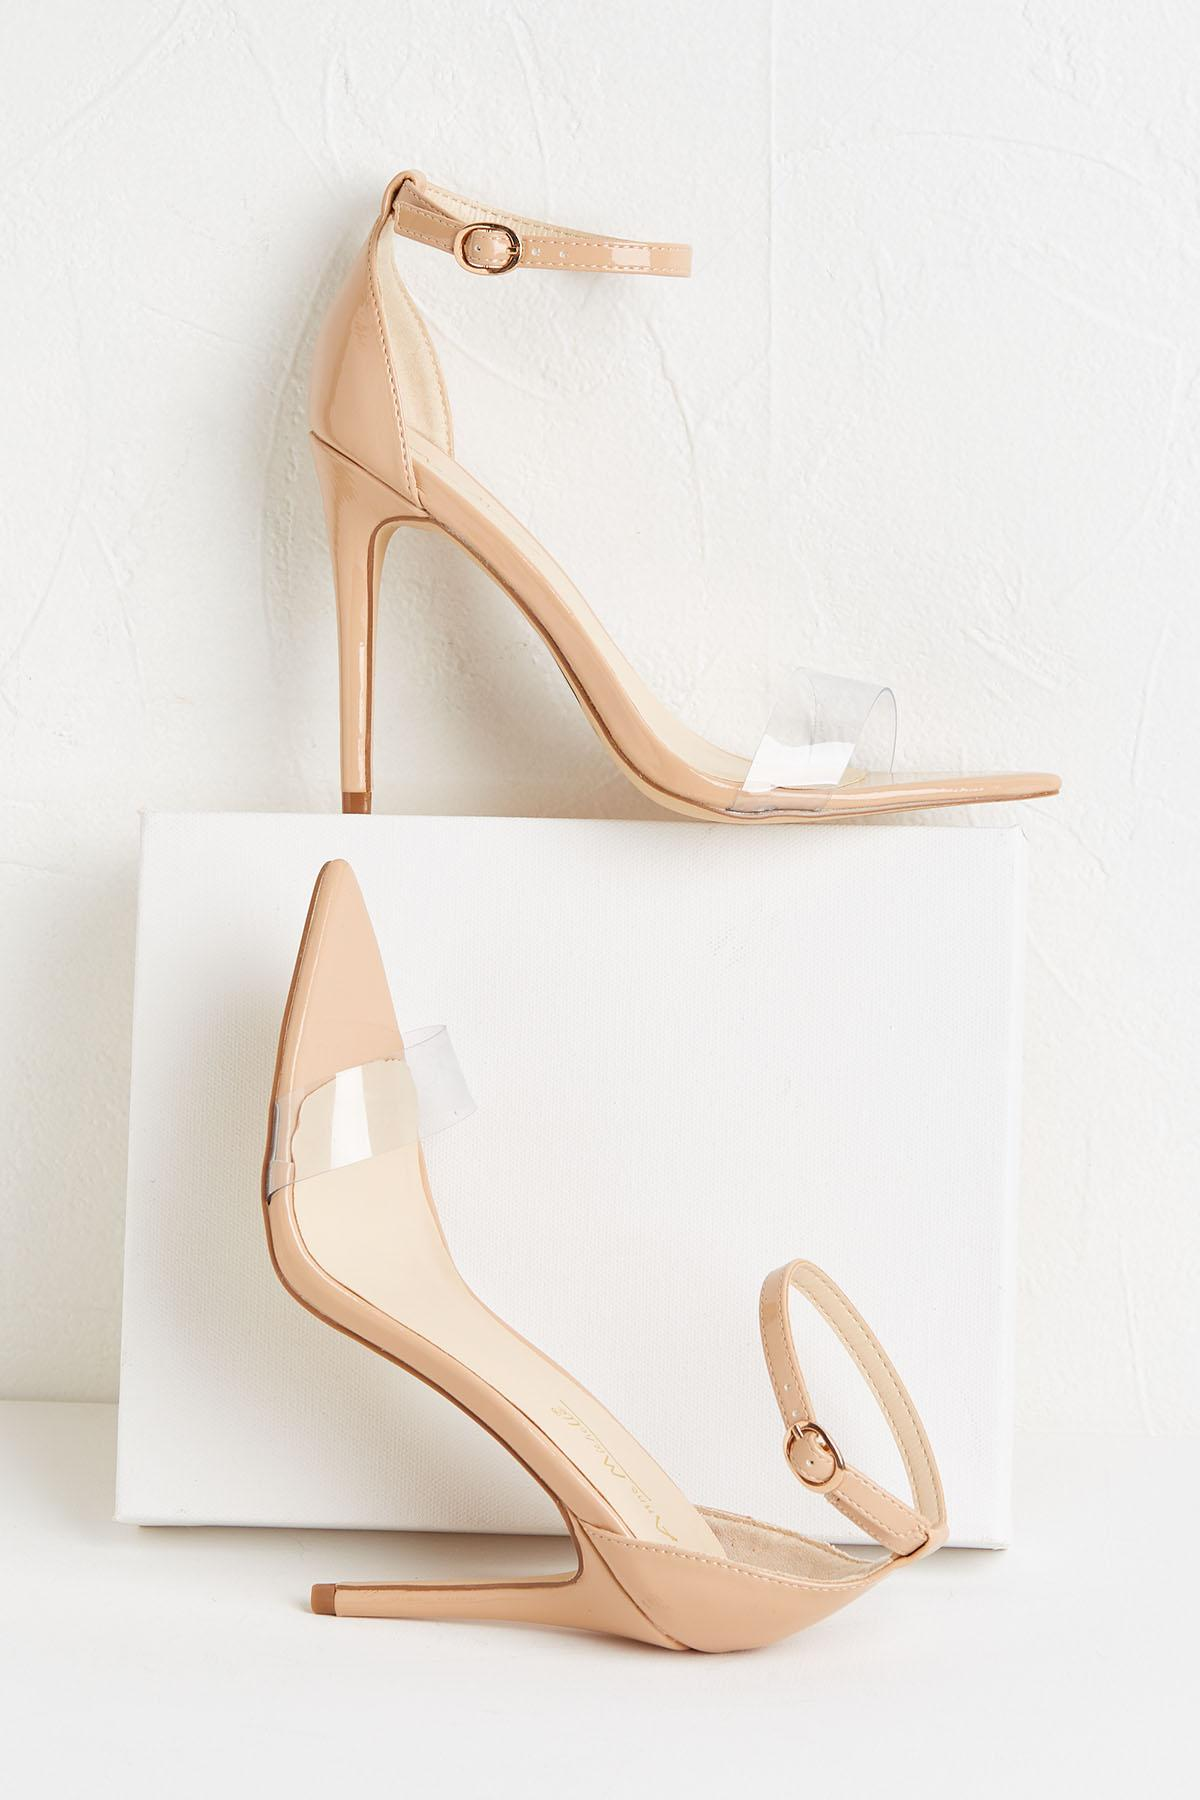 To The Point Nude Heels